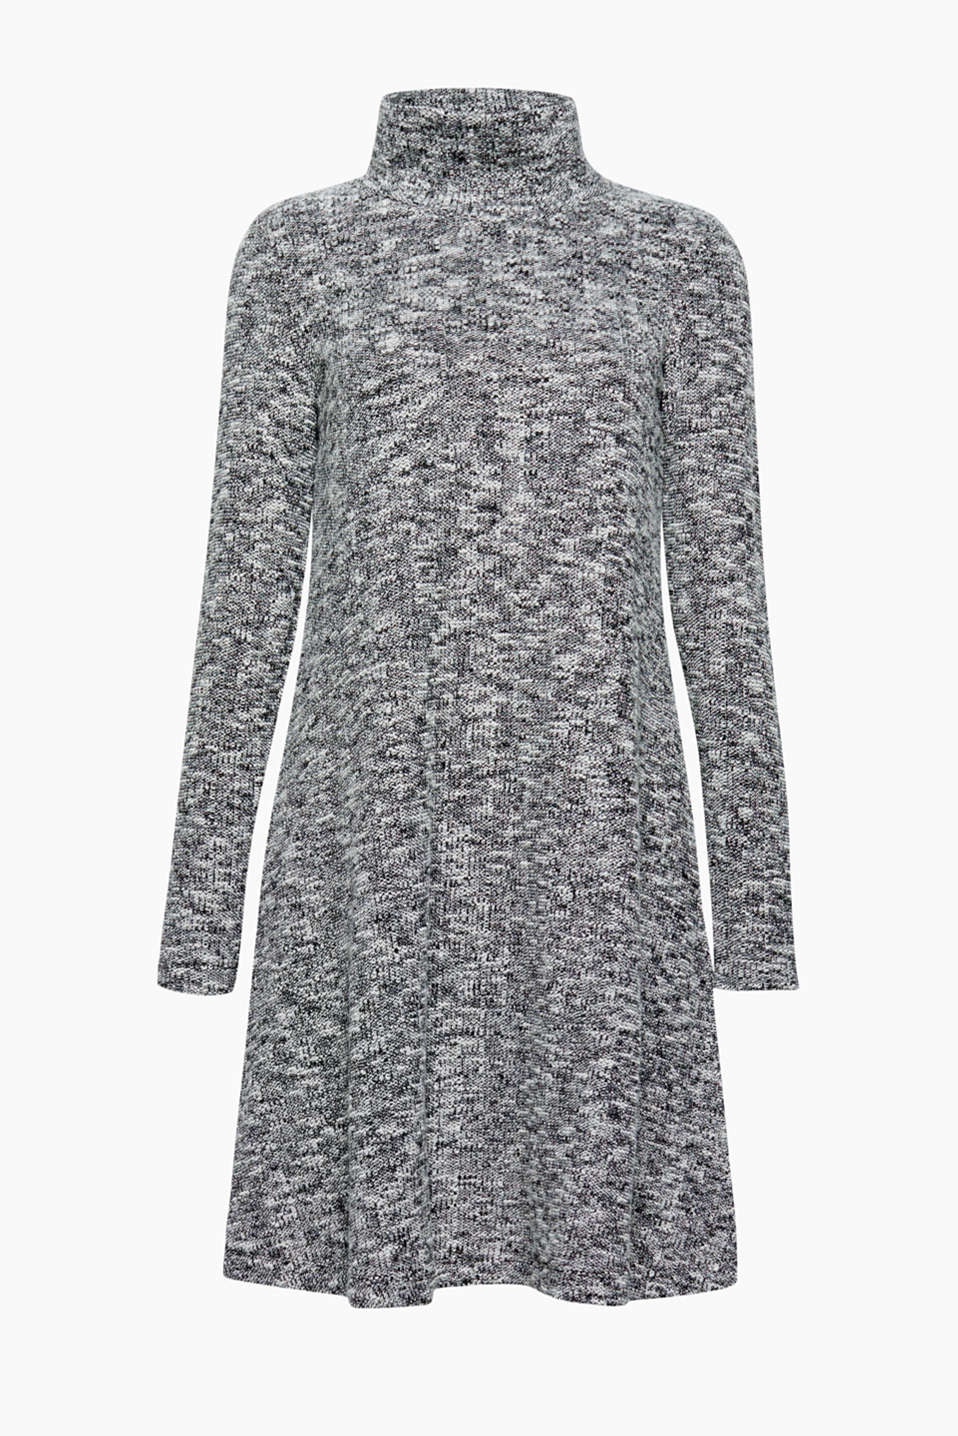 This thicker jersey dress in a choppy bouclé look has a trendy melange finish and is wonderfully comfortable to wear!